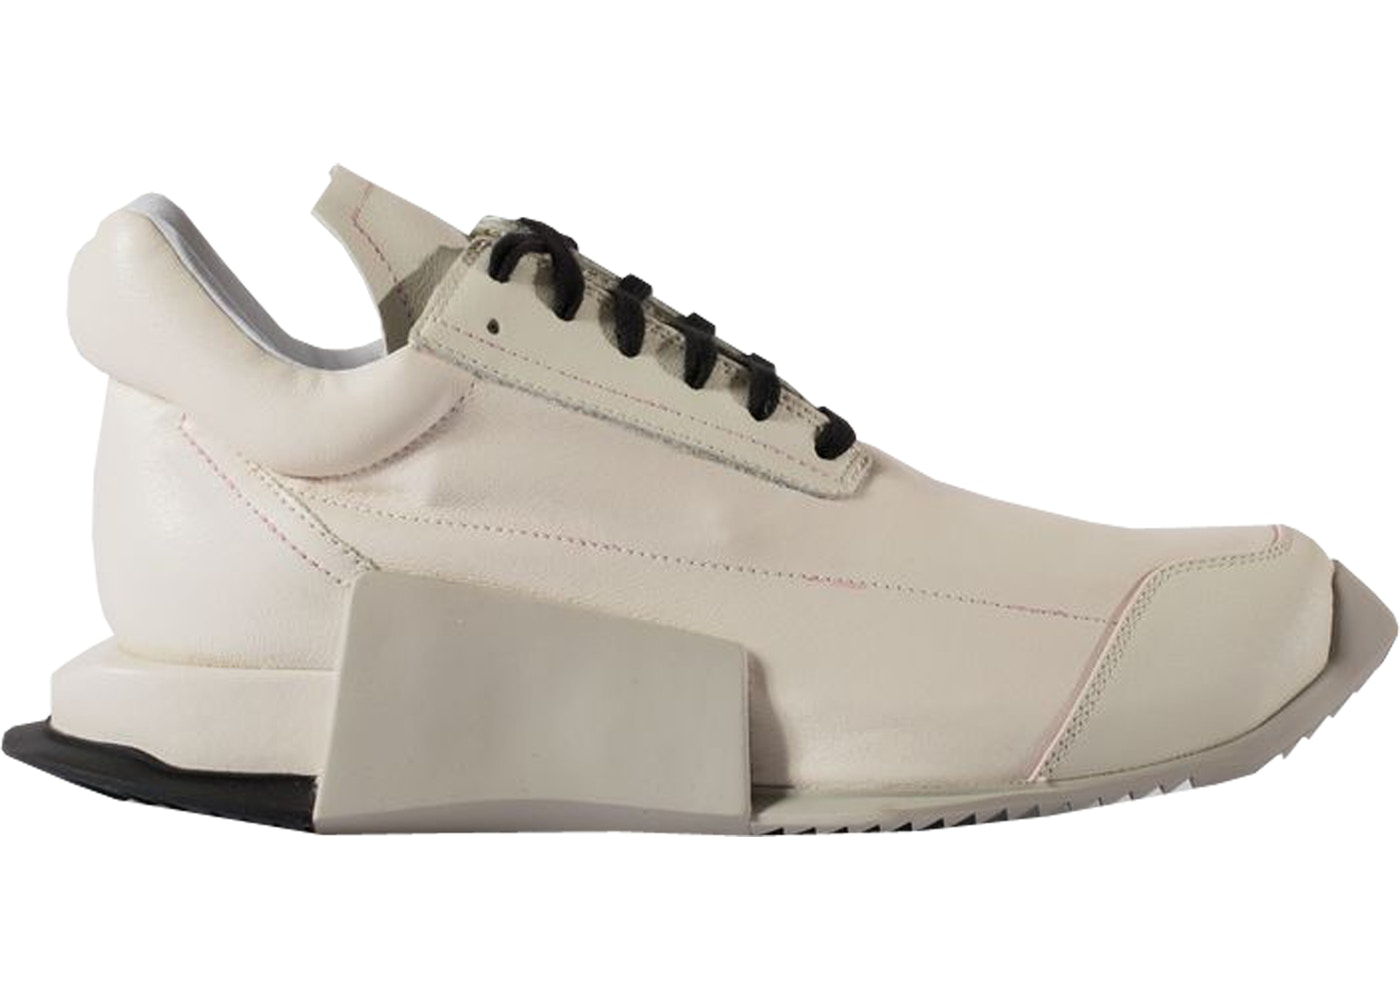 lowest price 914ec 4b723 adidas Level Runner Low Rick Owens Milk - BY2992